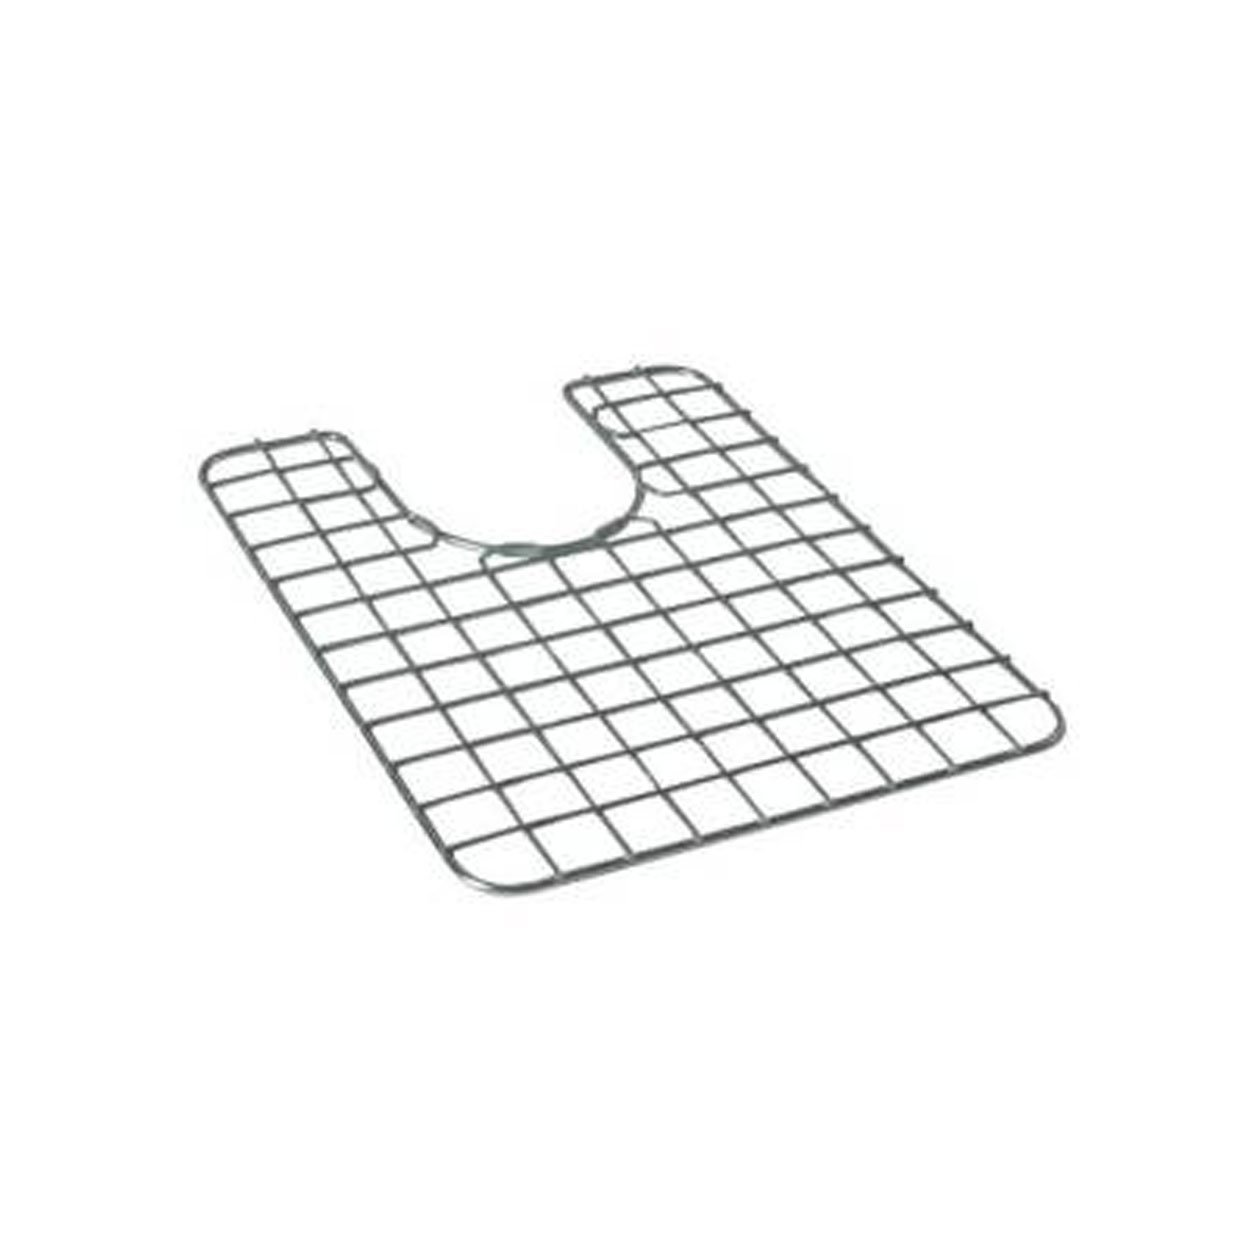 Franke KB13-36C Kubus Stainless Steel Coated Sink Rack for KBX-110-13